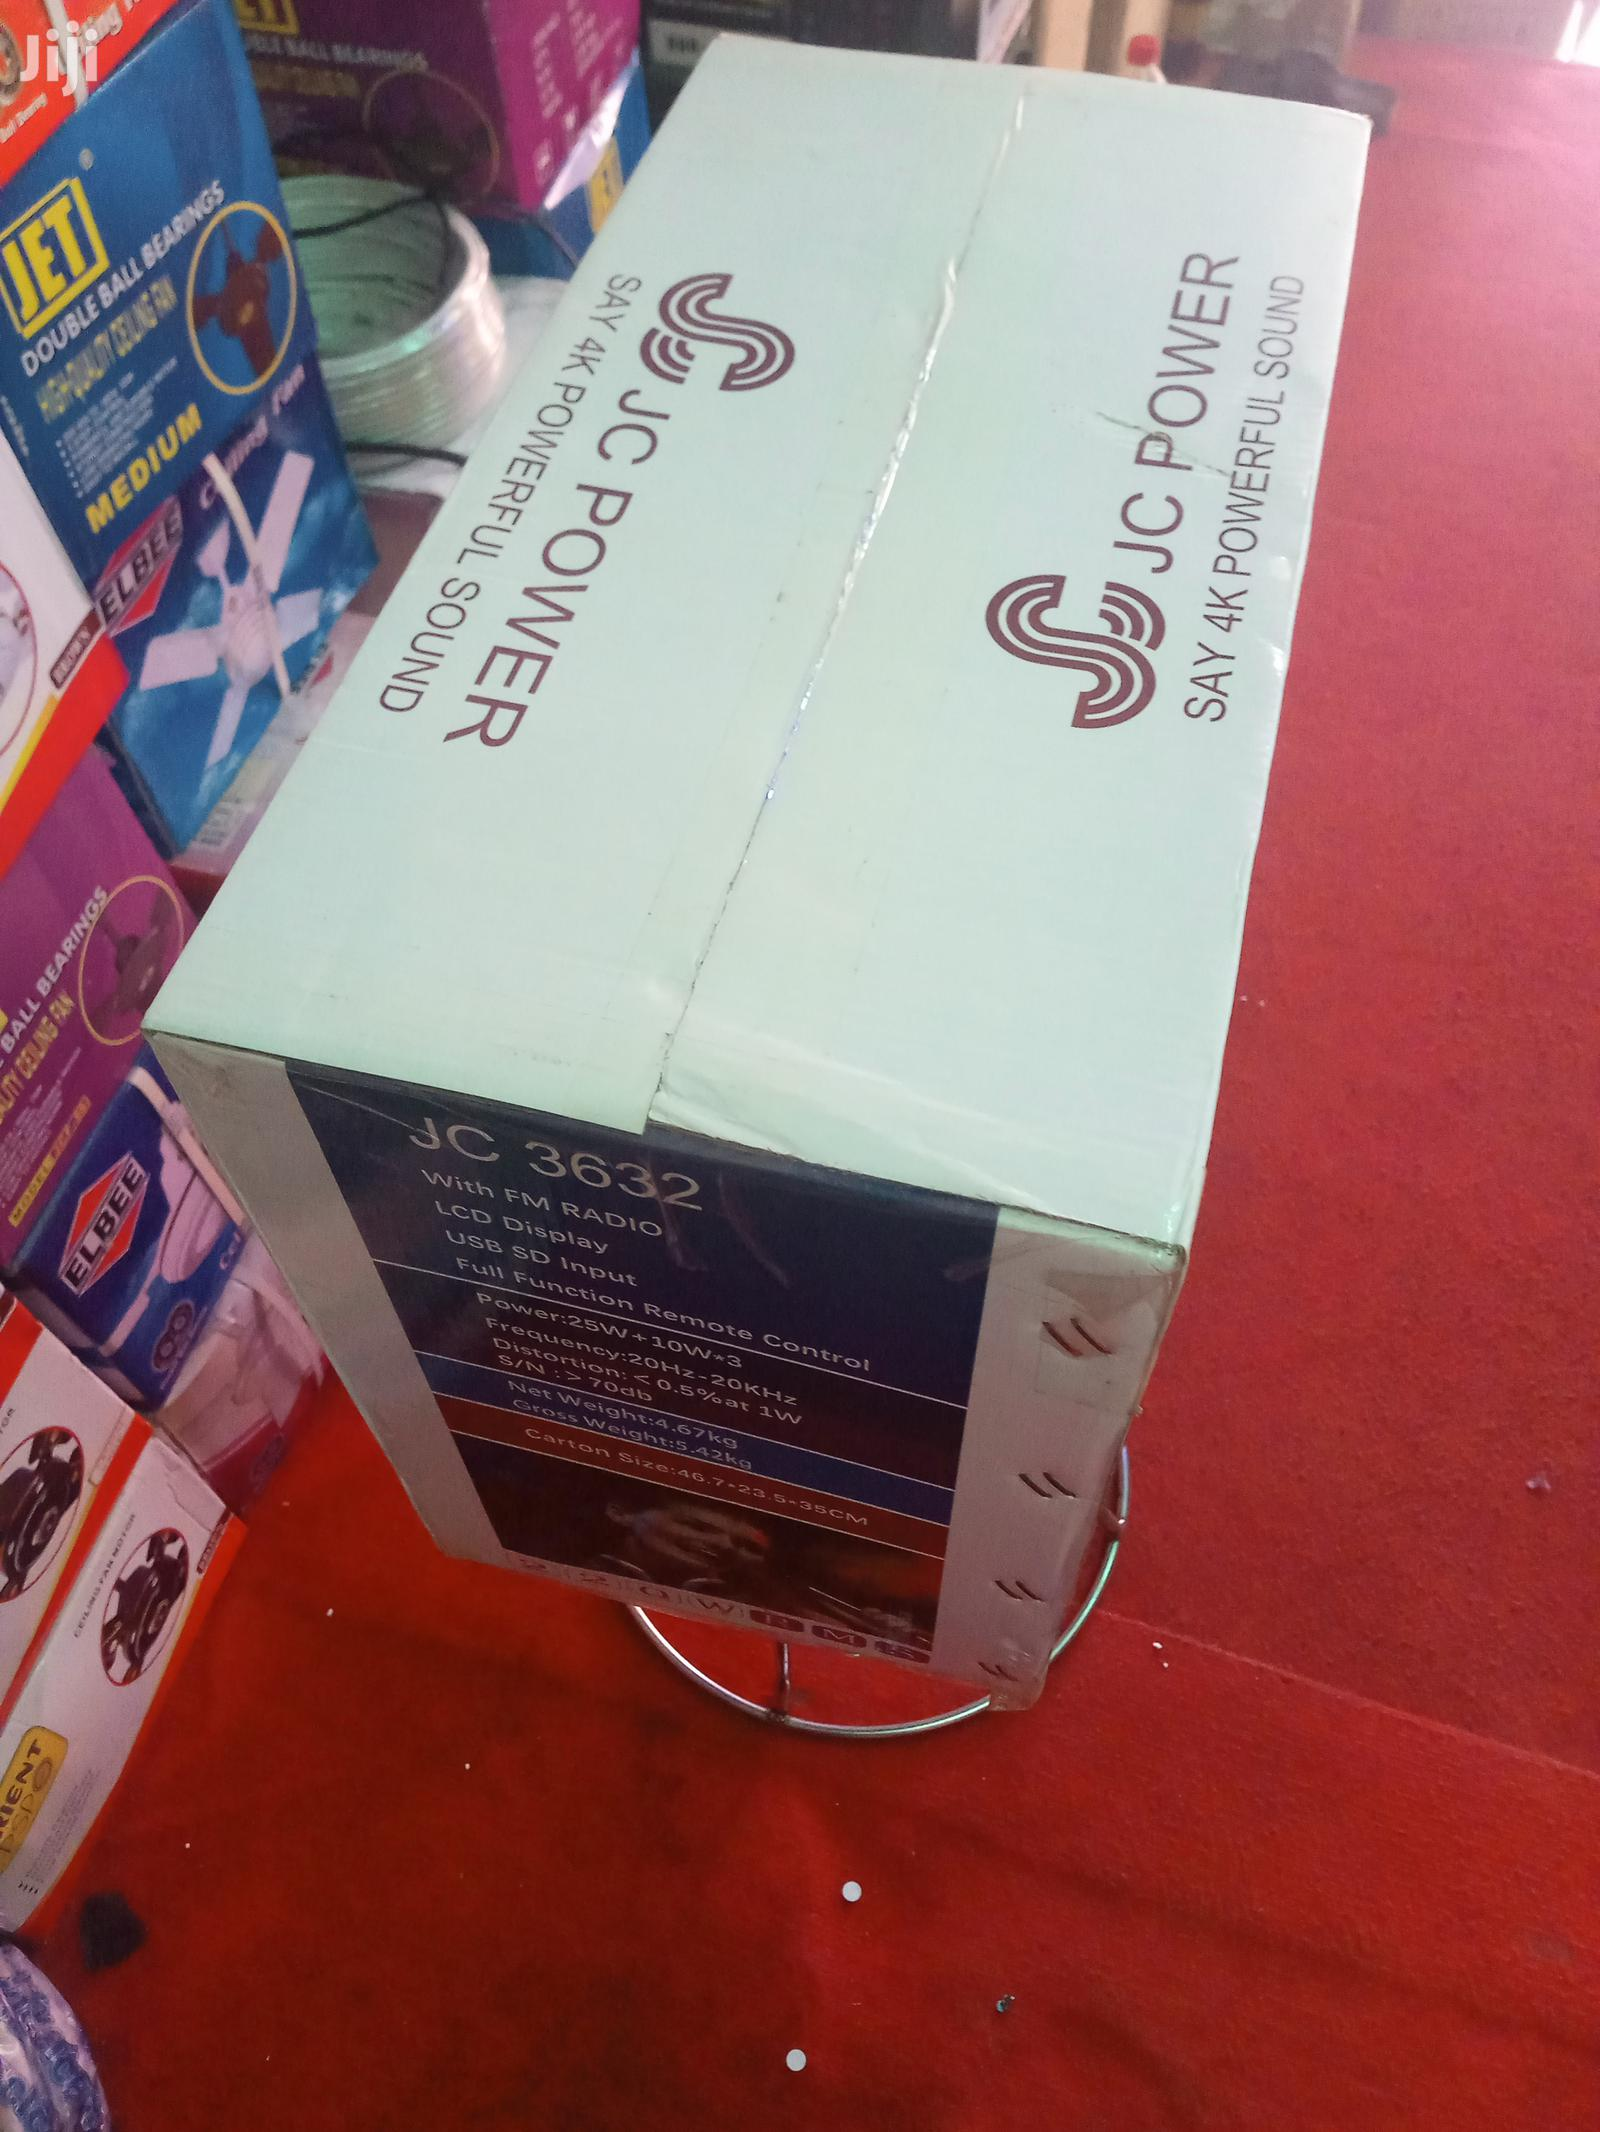 Jc Power Home Theater | Audio & Music Equipment for sale in Dansoman, Greater Accra, Ghana